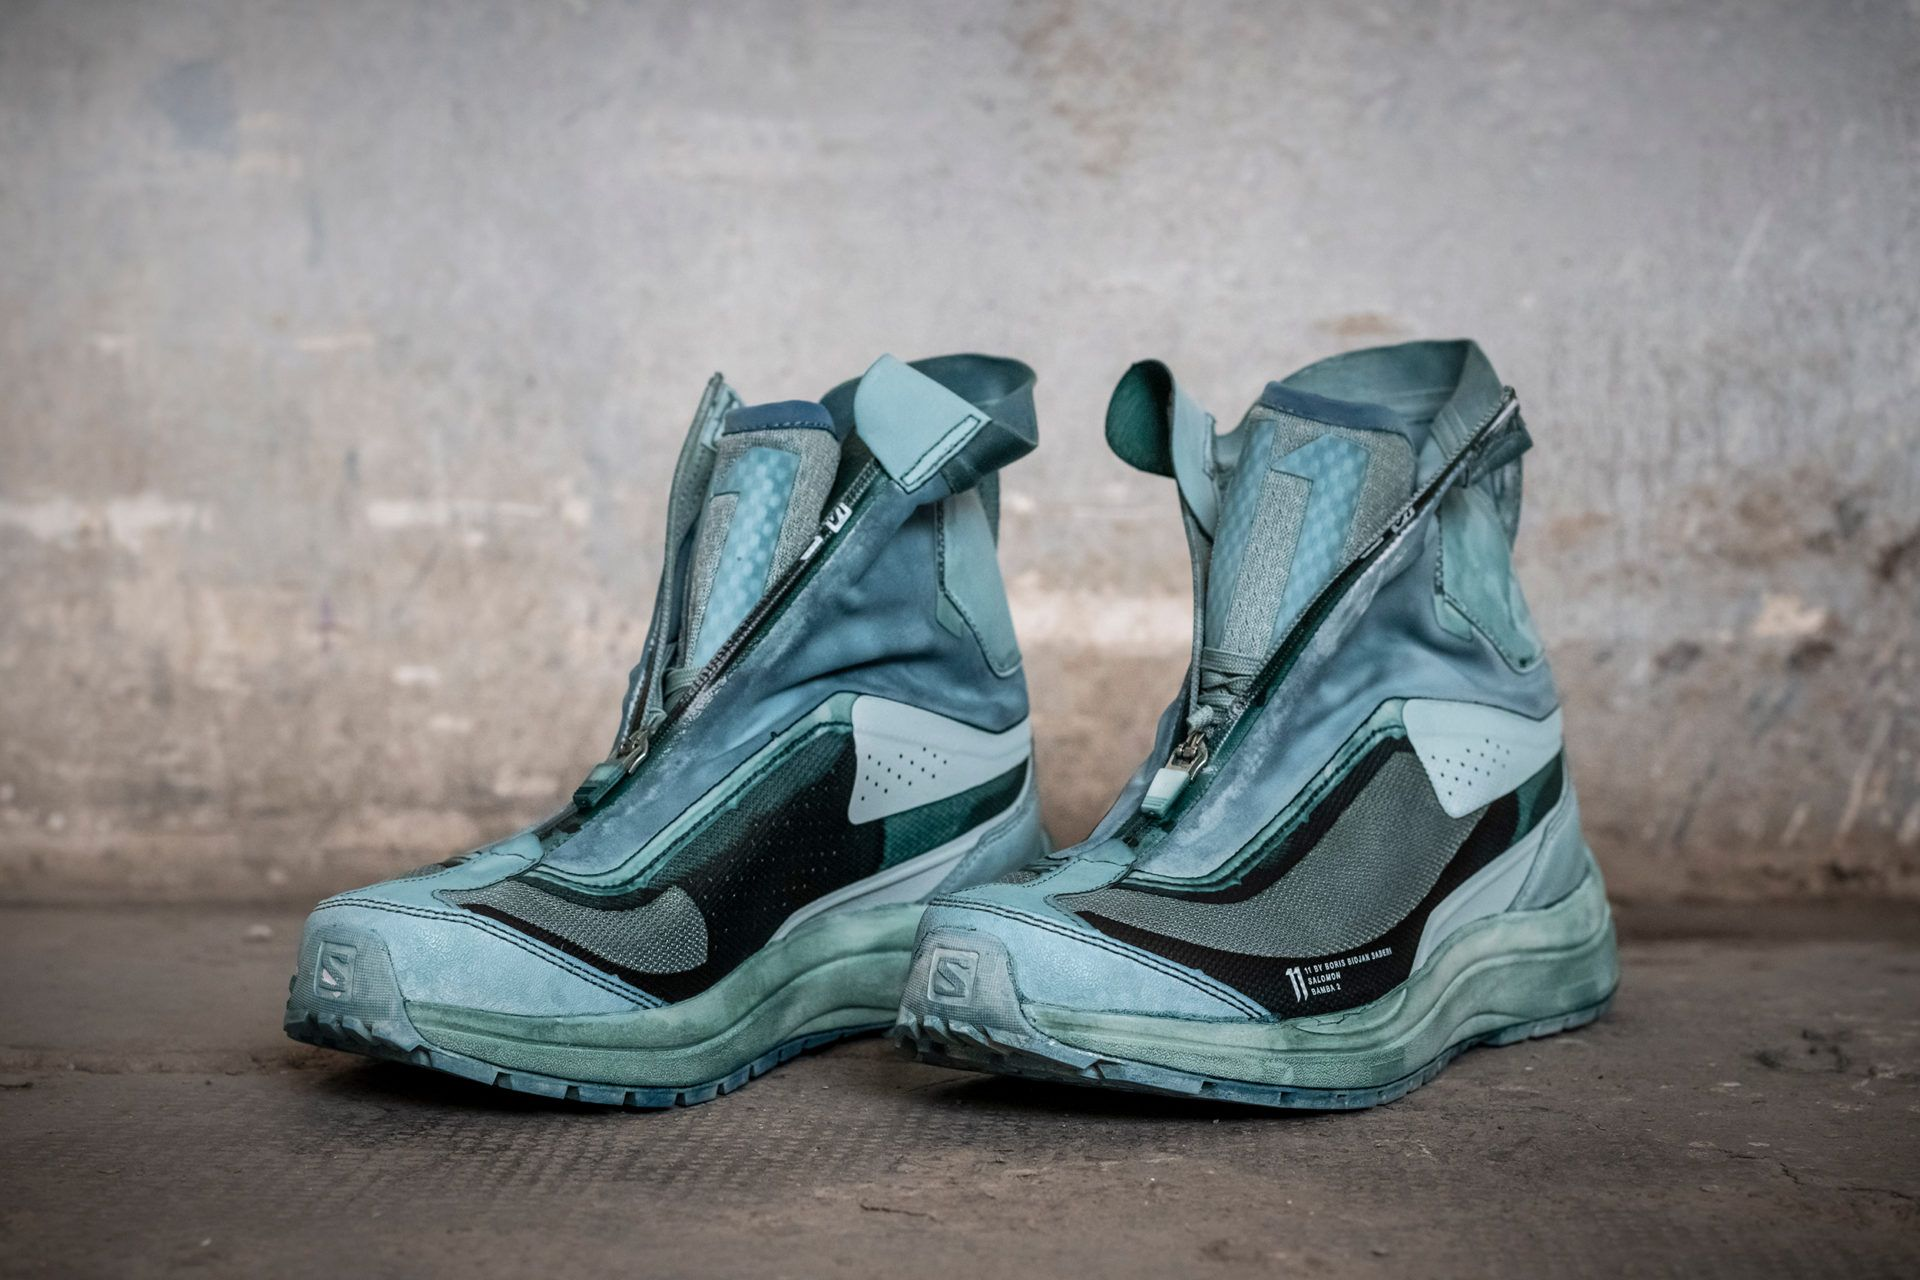 AW19 11 BY BBS Boots, Combat boots, Asics sneaker